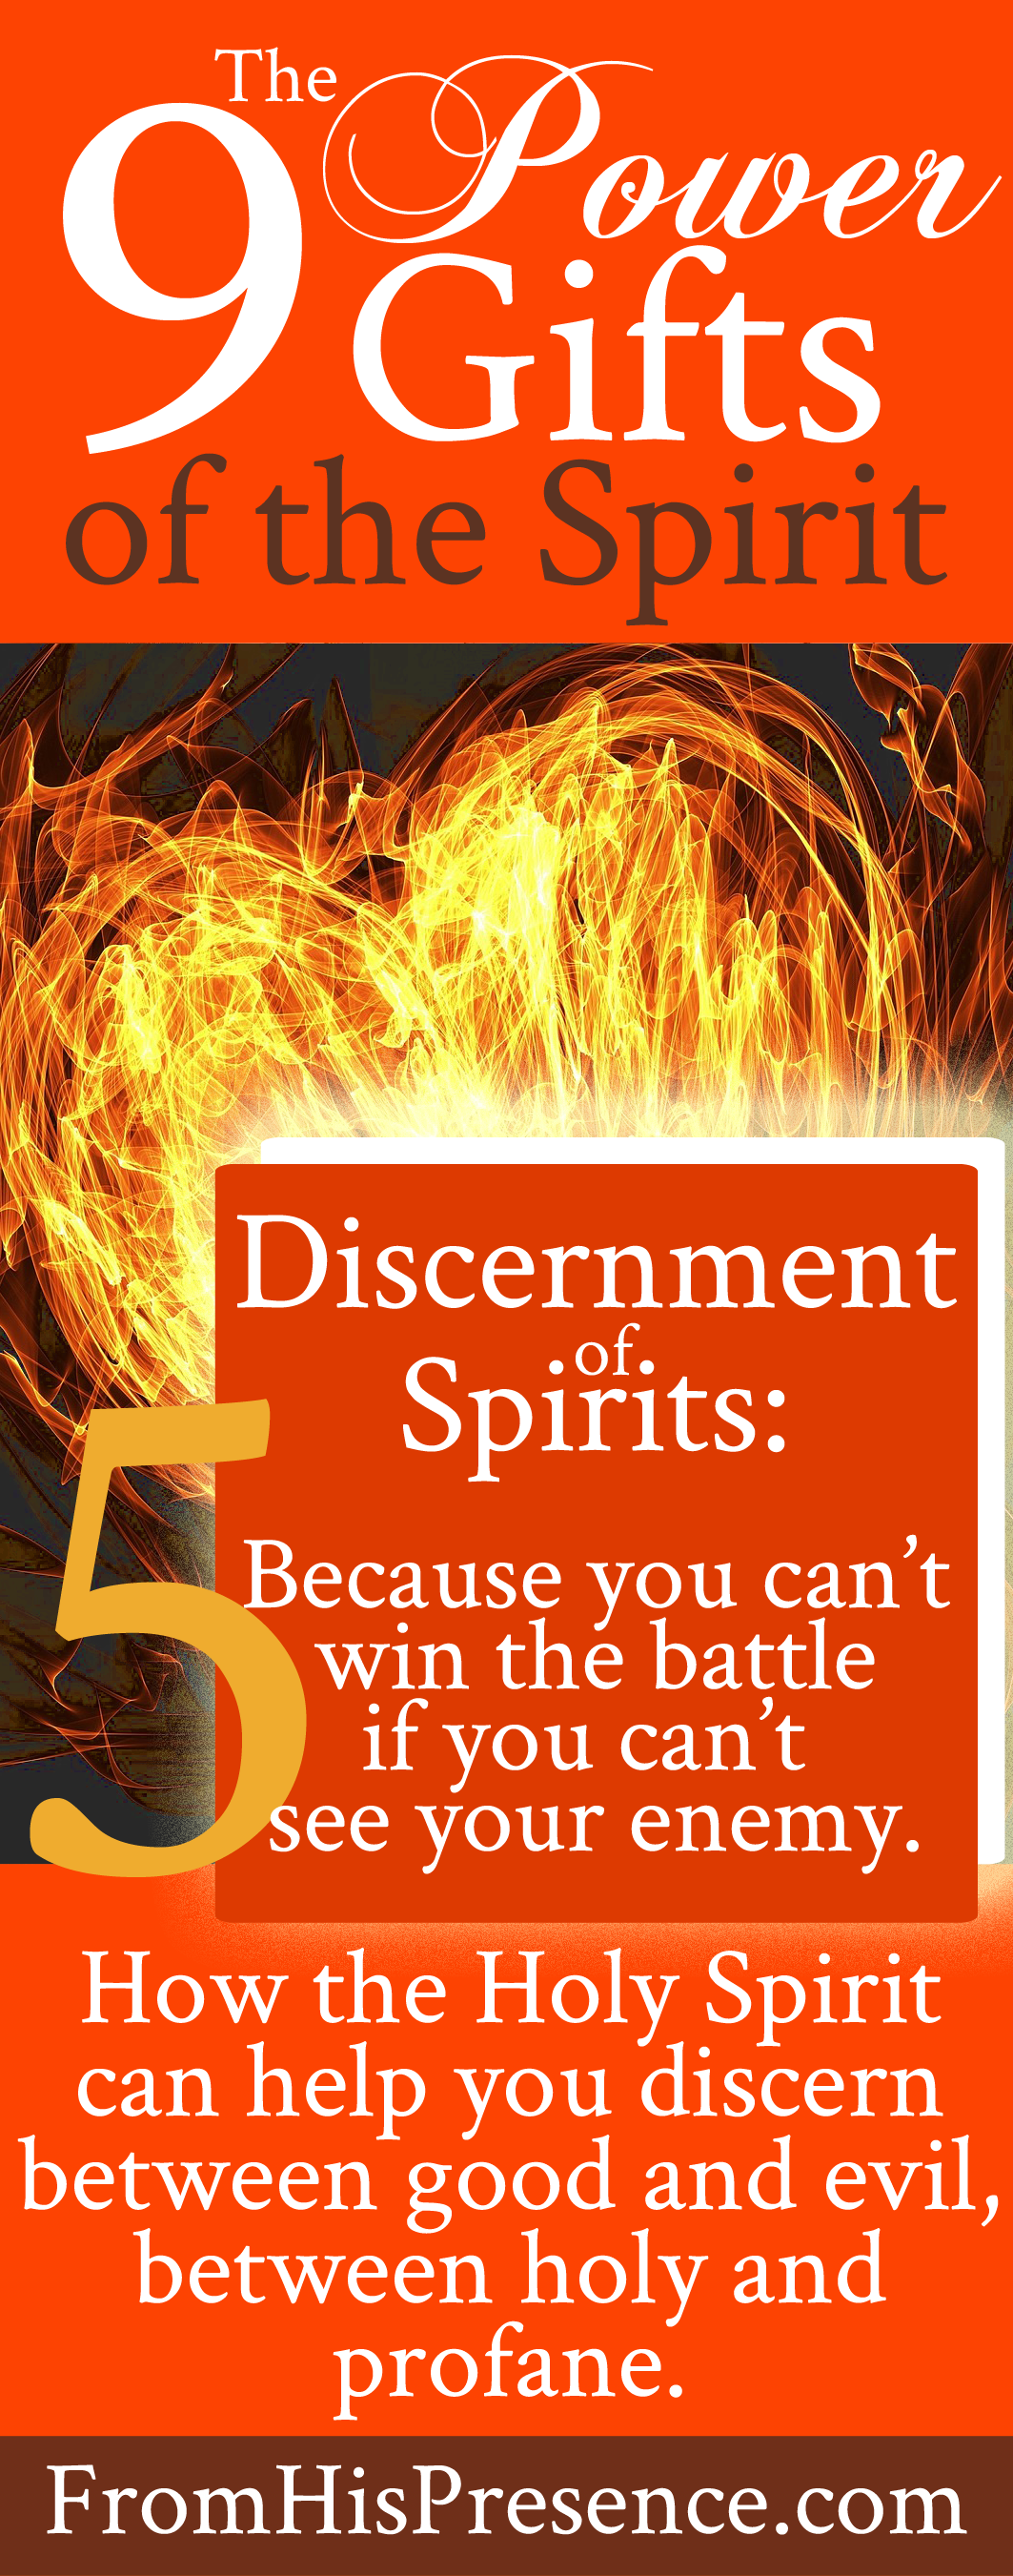 Discernment Of Spirits One The 9 Power Gifts Holy Spirit Read How It Works And To Use Here In This Free Blog Series